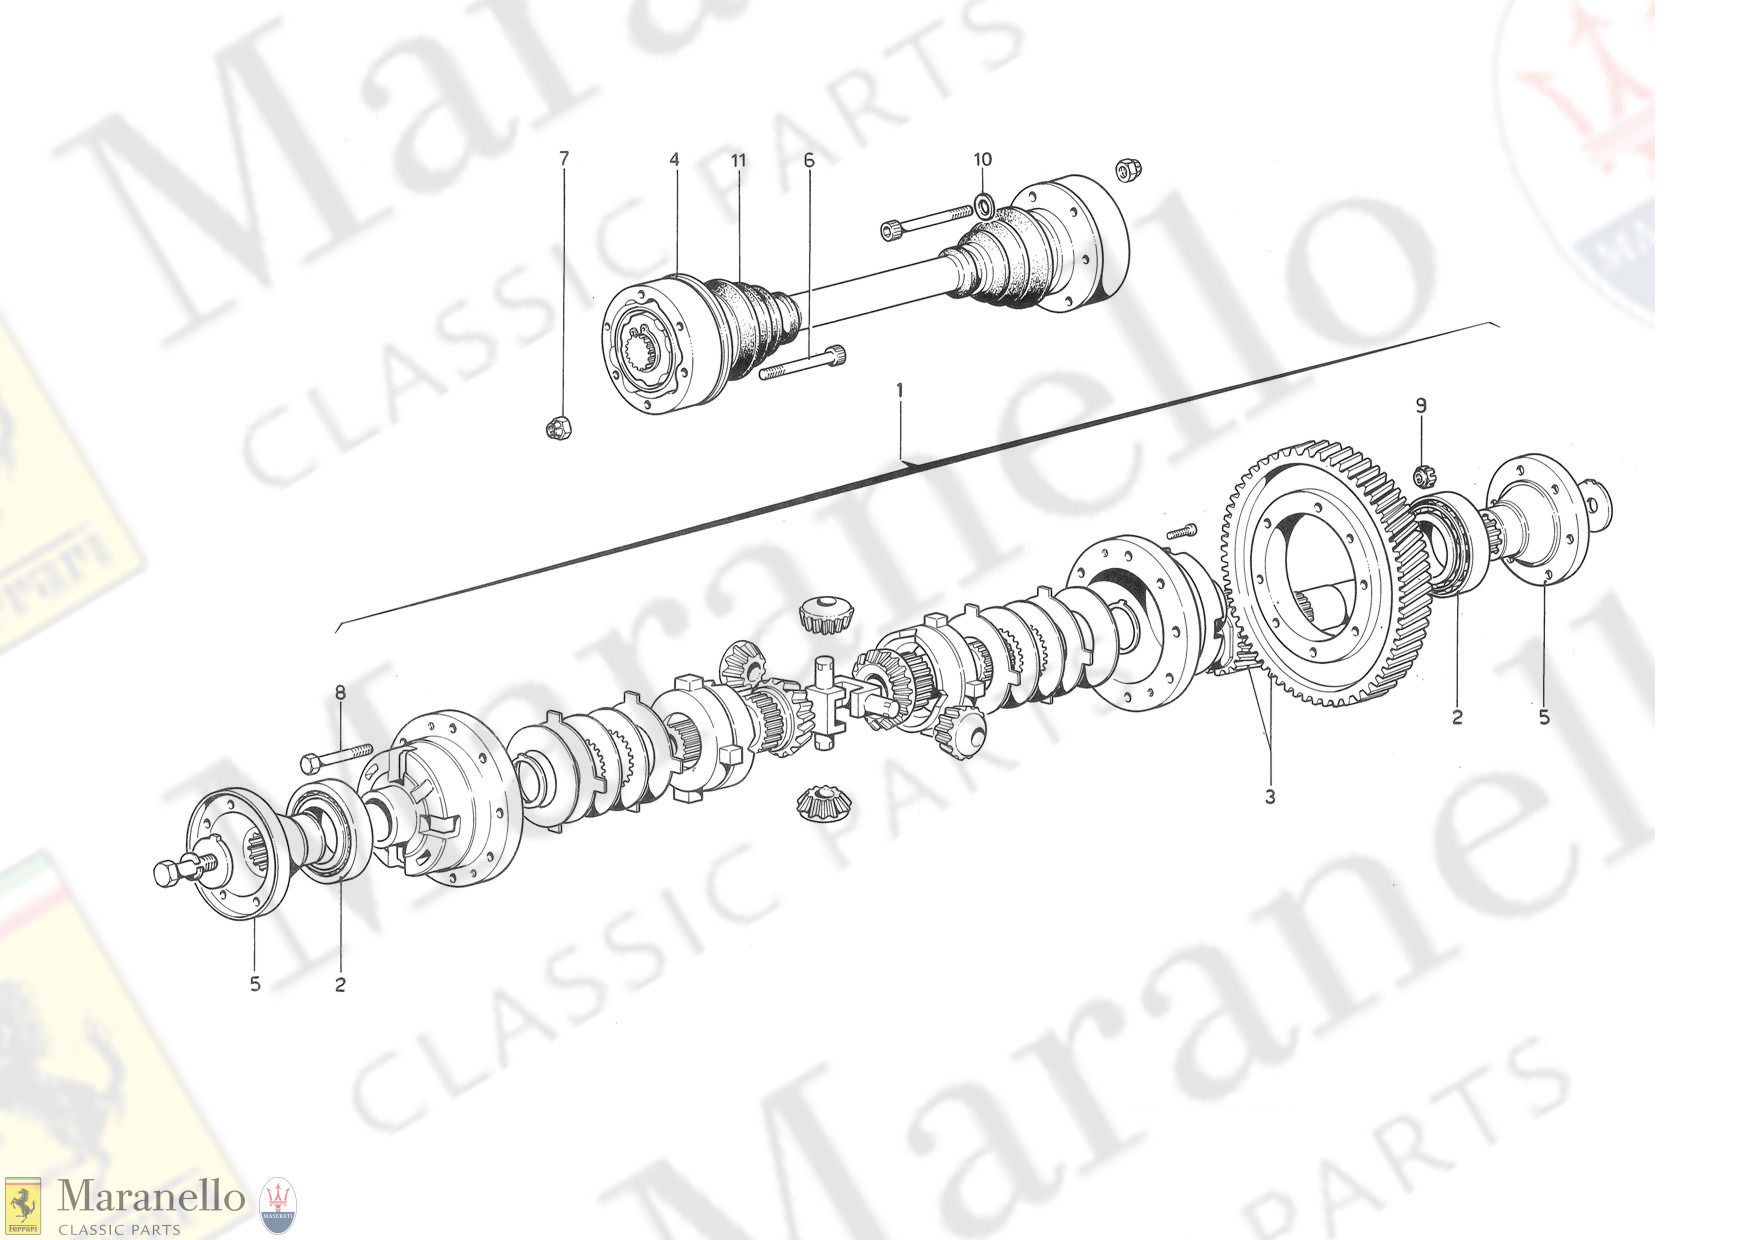 030 - Differential And Axle Shafts